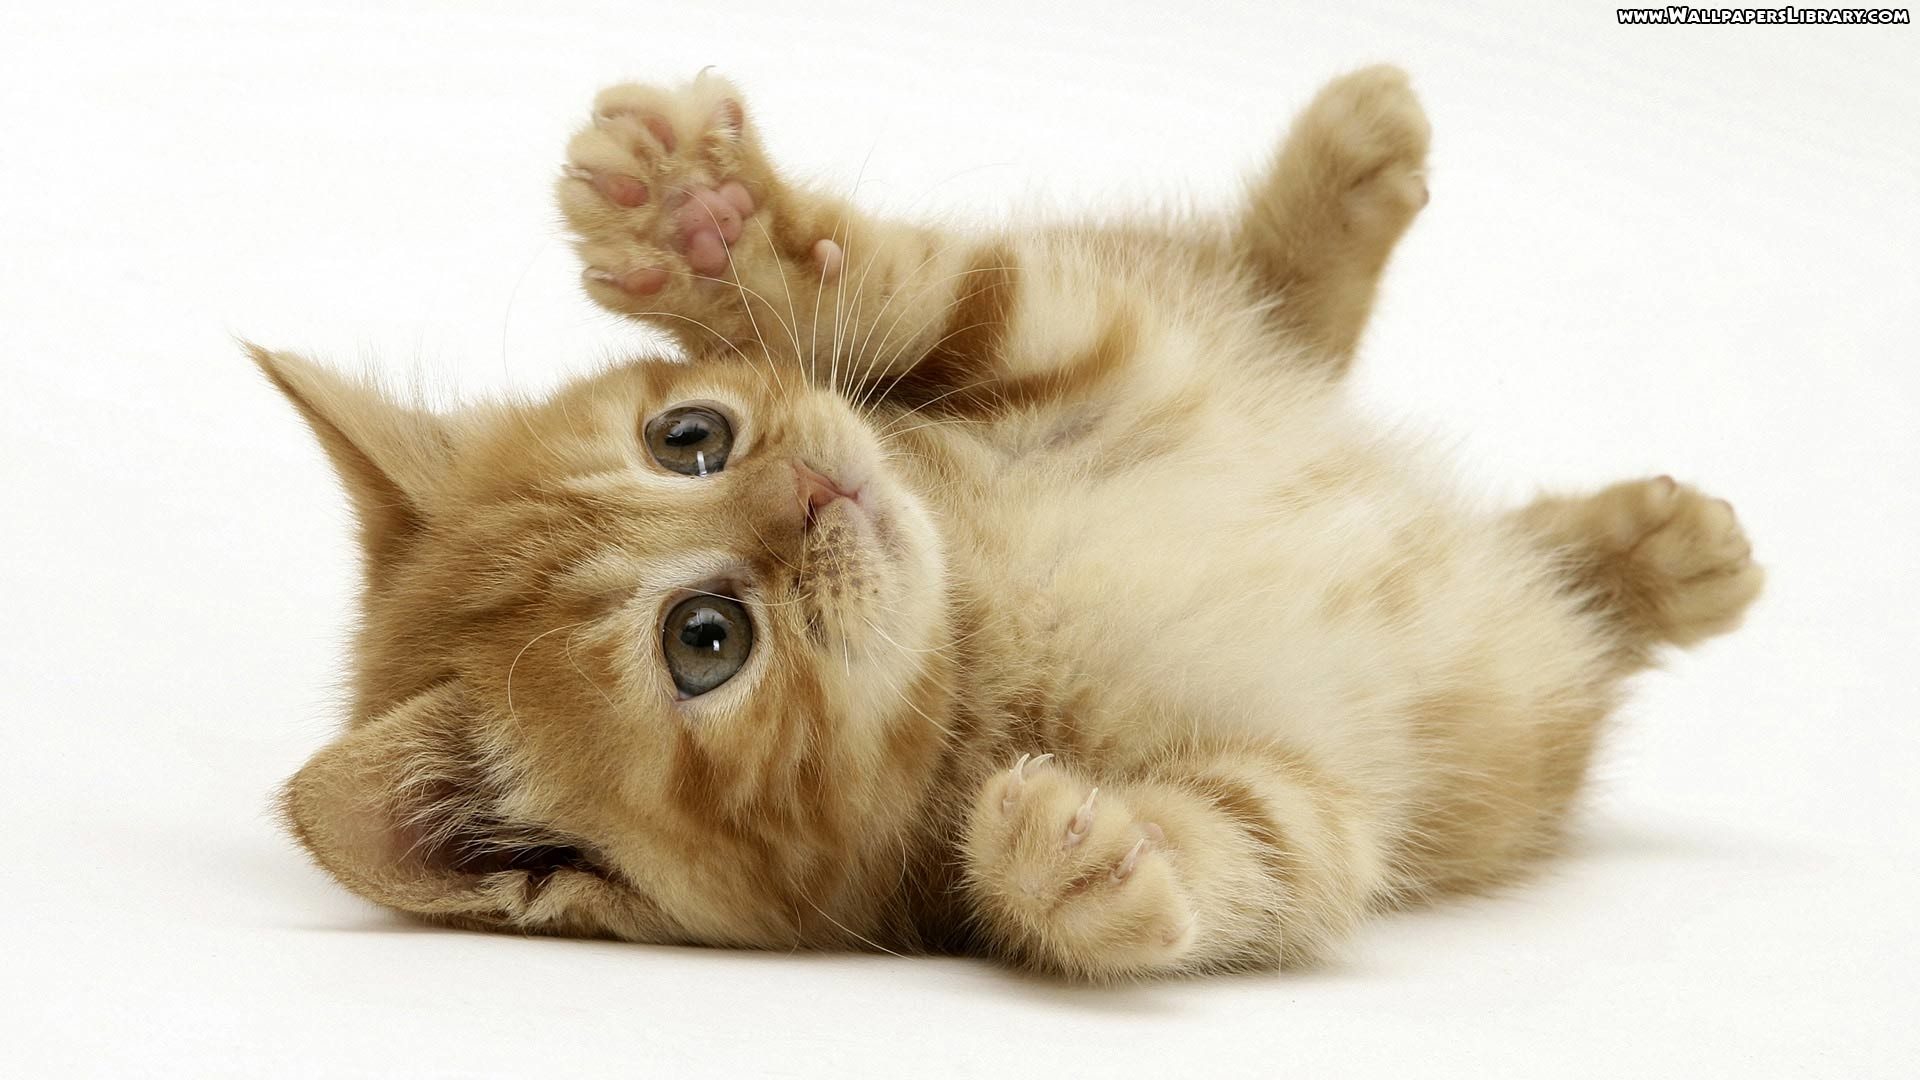 1920x1080 Cute Kitten Wallpaper Android Apps on Google Play